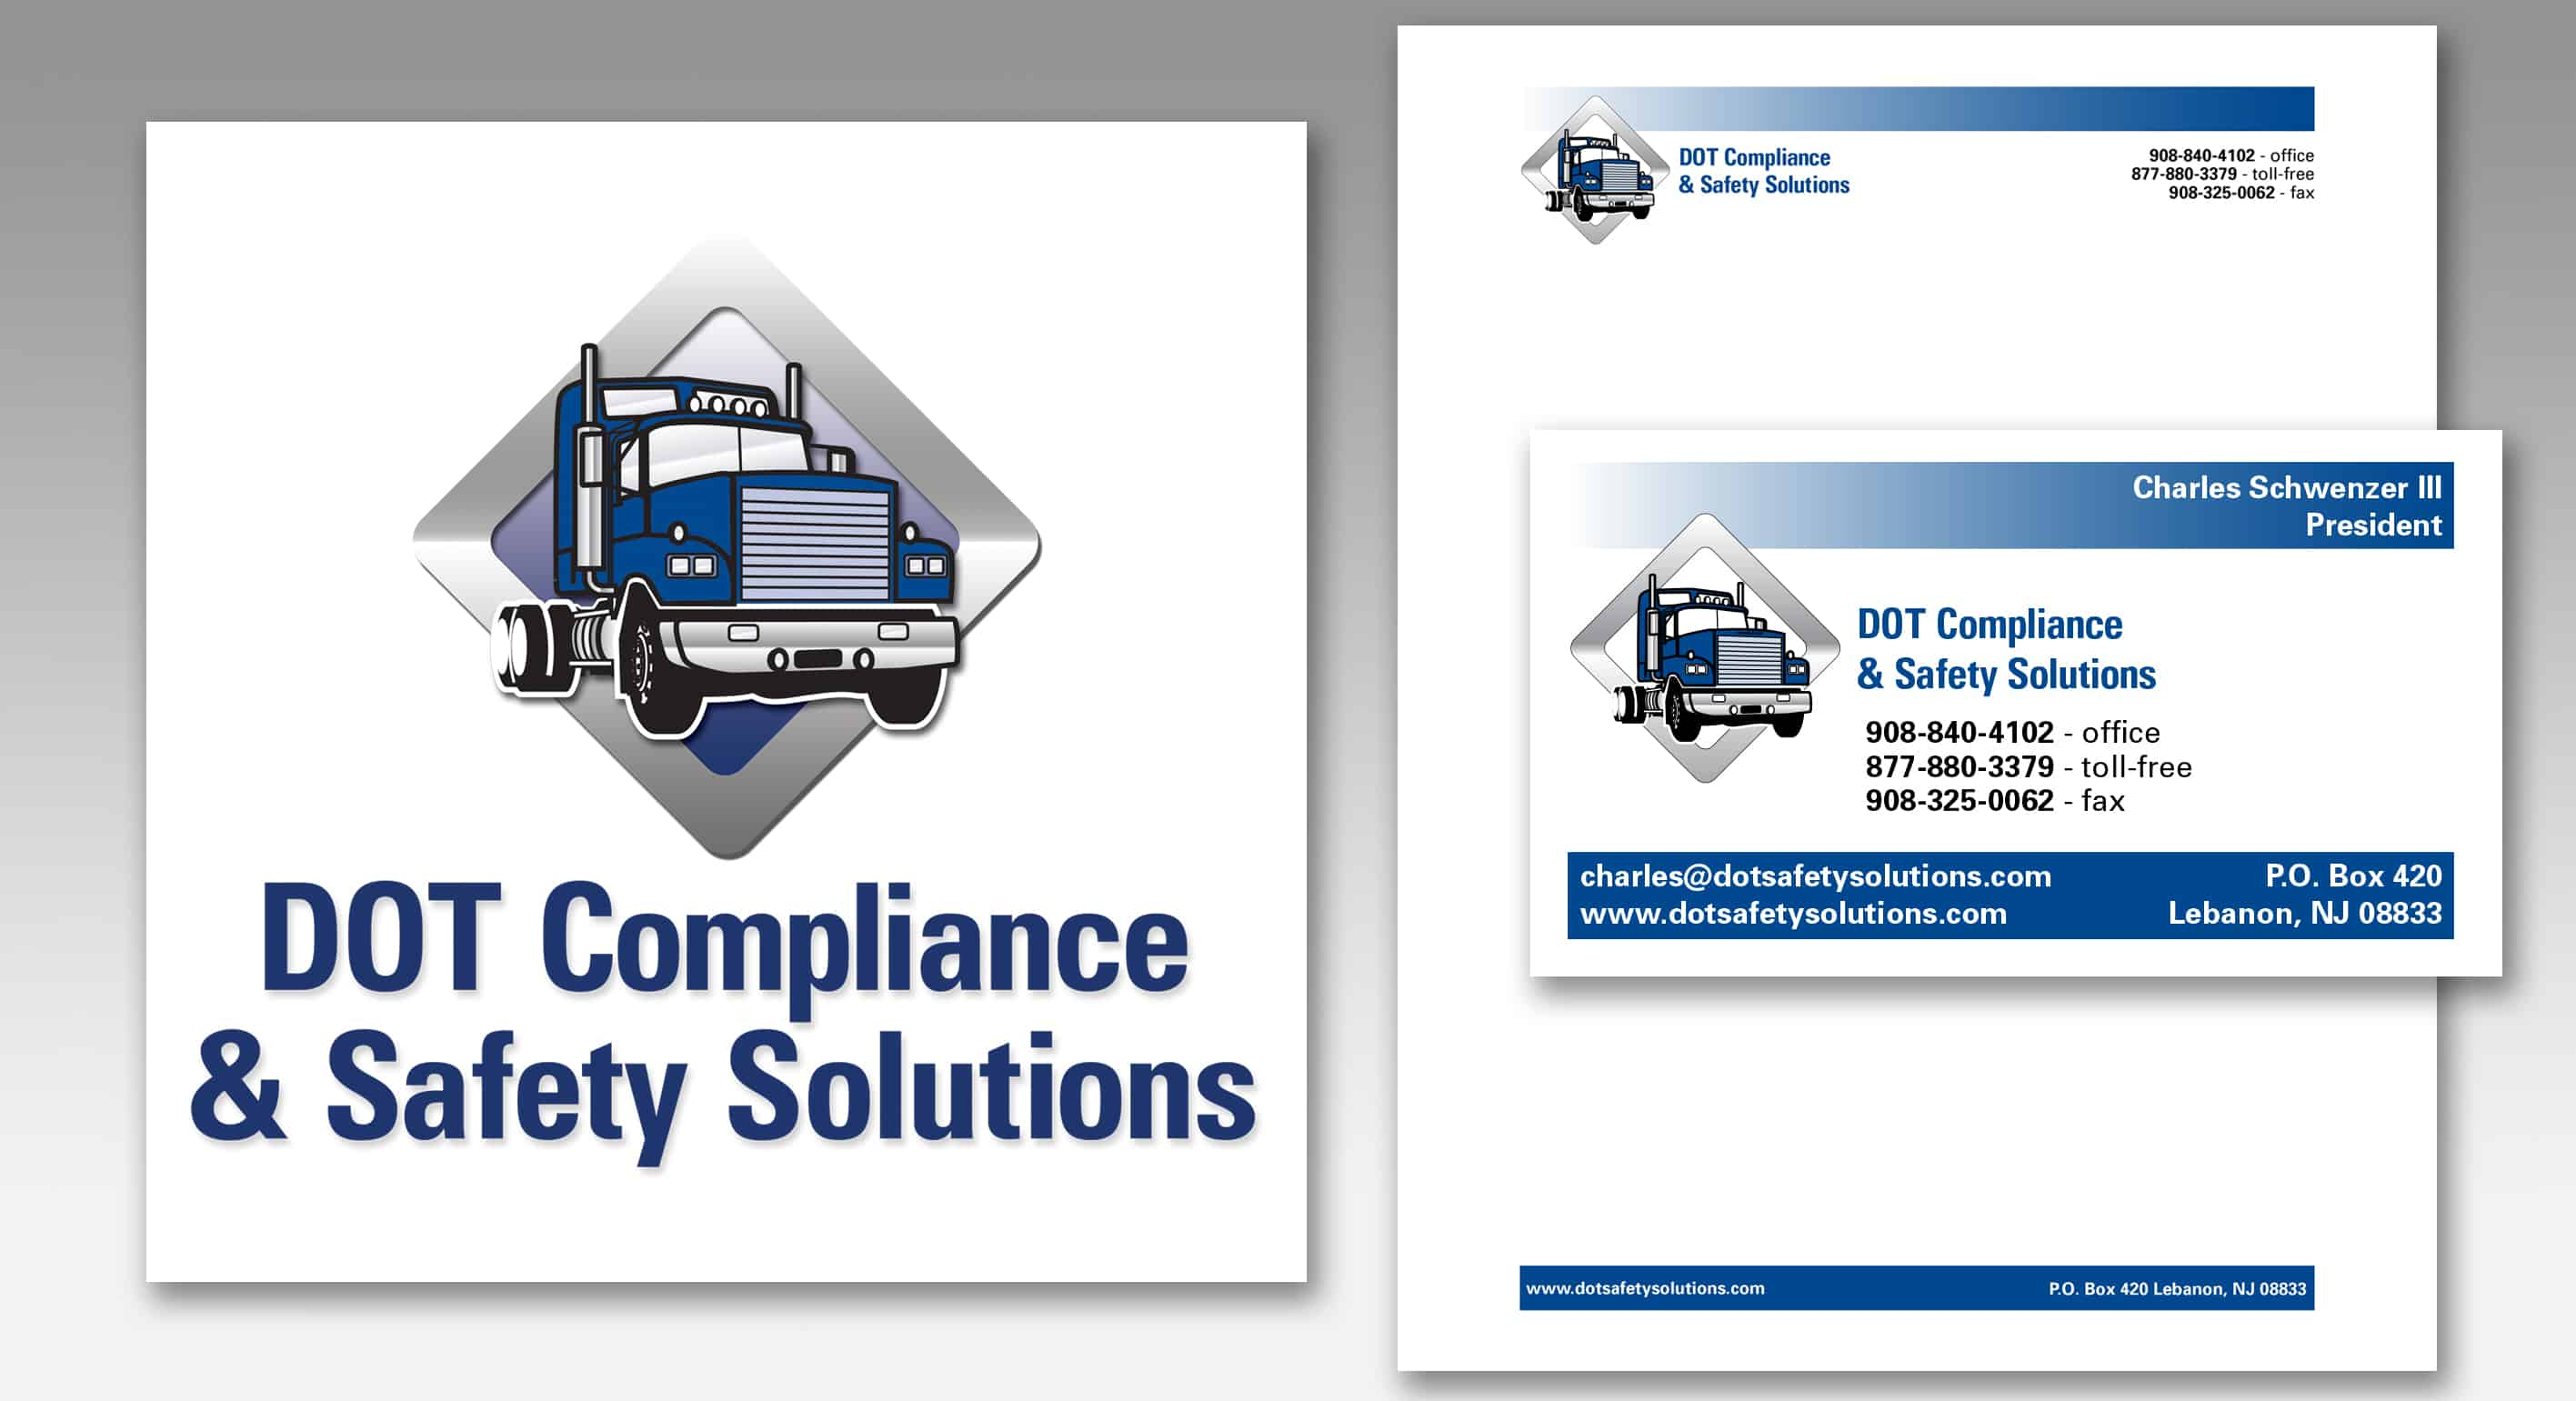 DOT Compliance & Safety Solutions